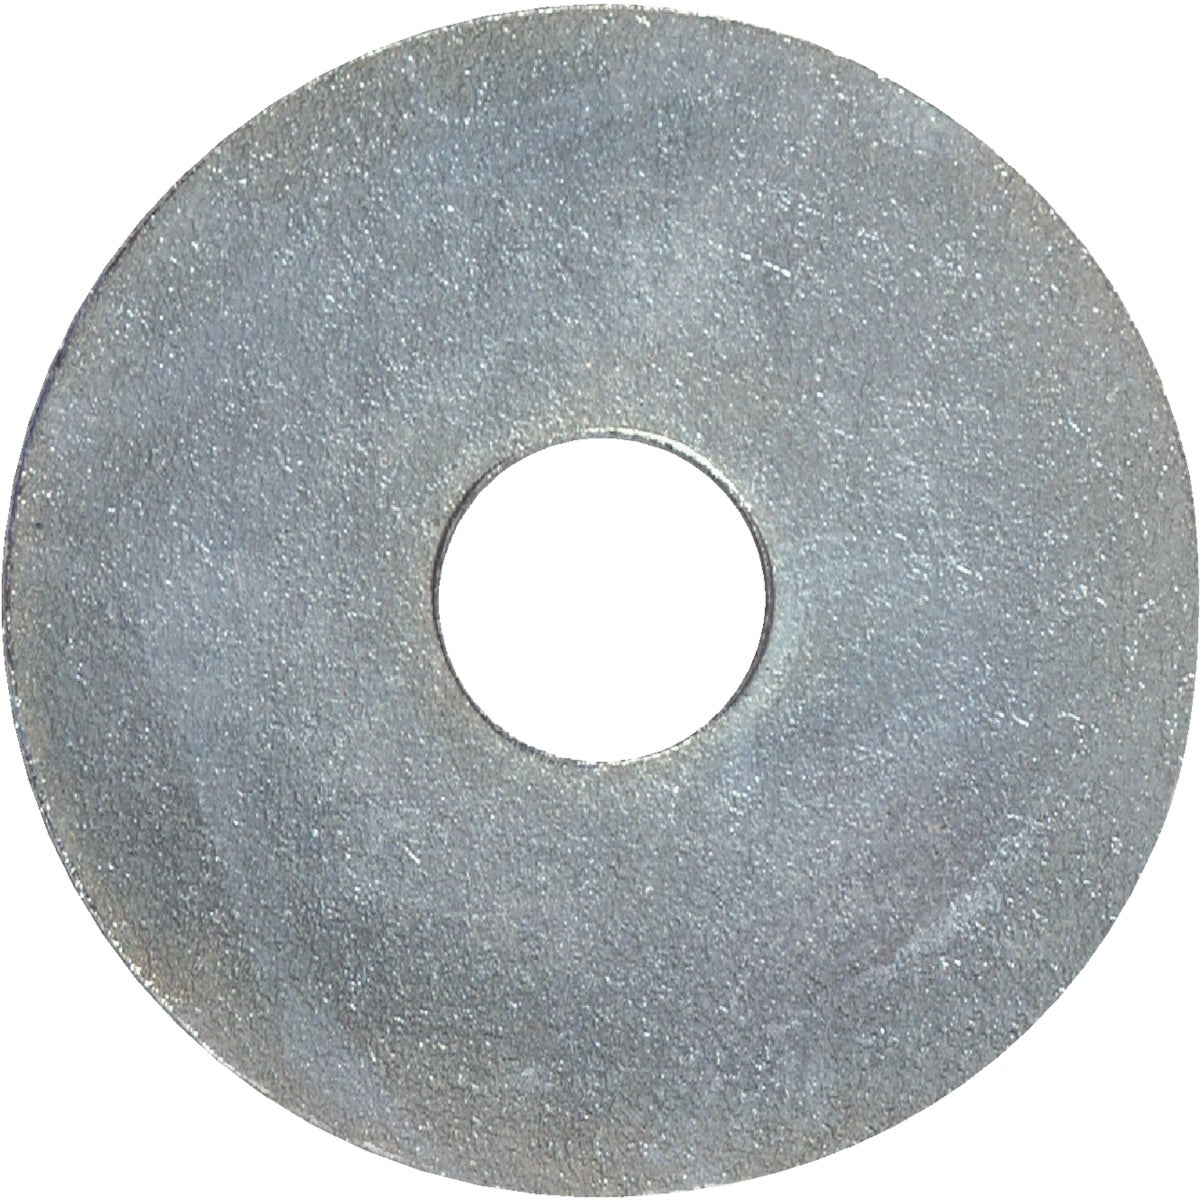 1/4X1-1/4 FENDER WASHER - 290015 by Hillman Fastener